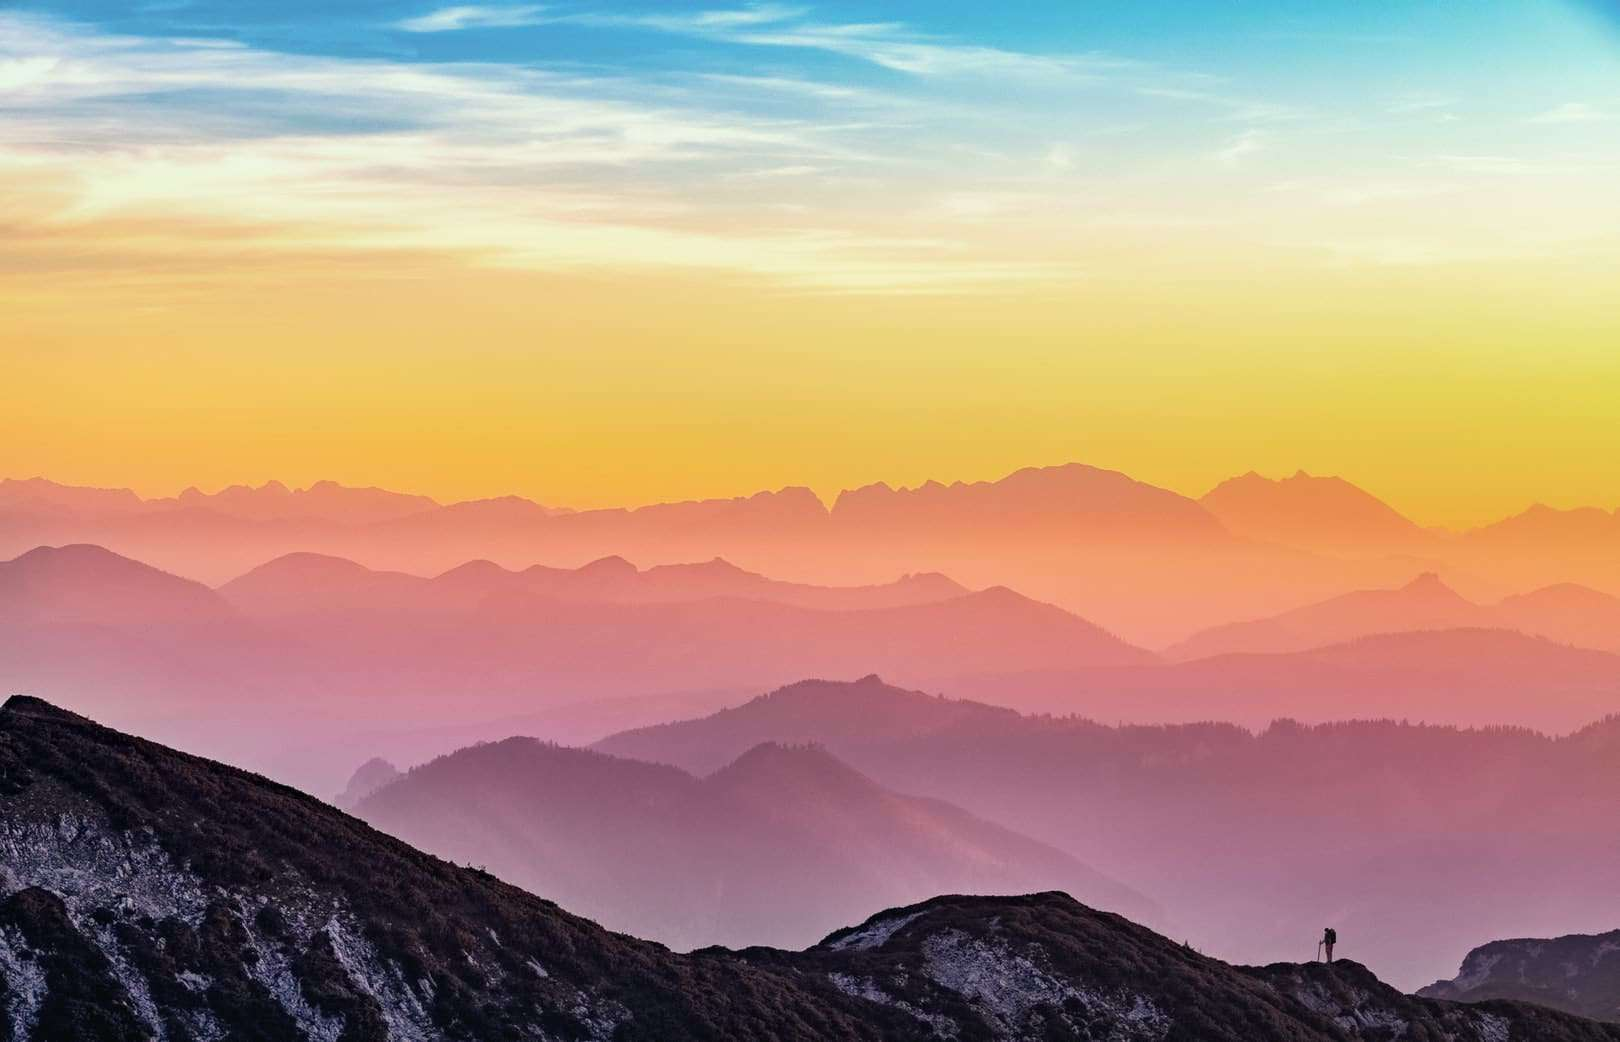 A rainbow of colors on a mountain range at sunrise